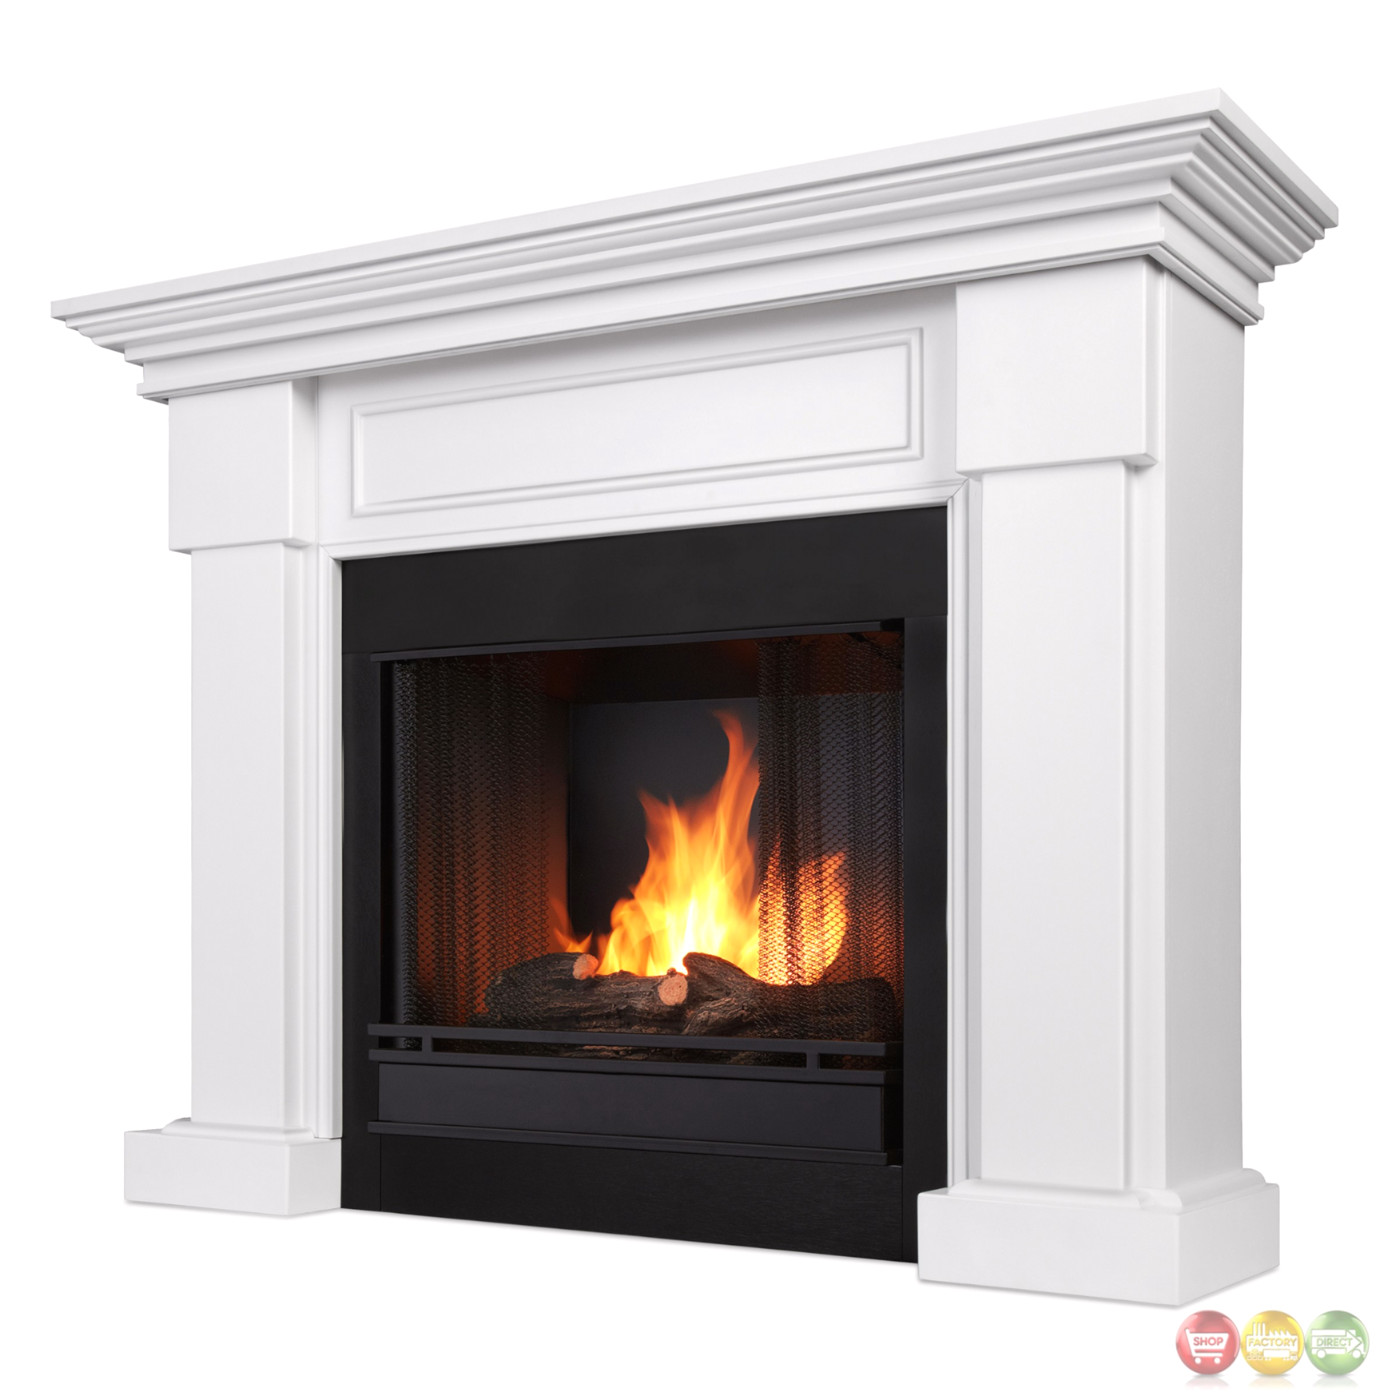 Ventless Fireplace: Hillcrest Ventless Gel Fuel Fireplace In White With Logs